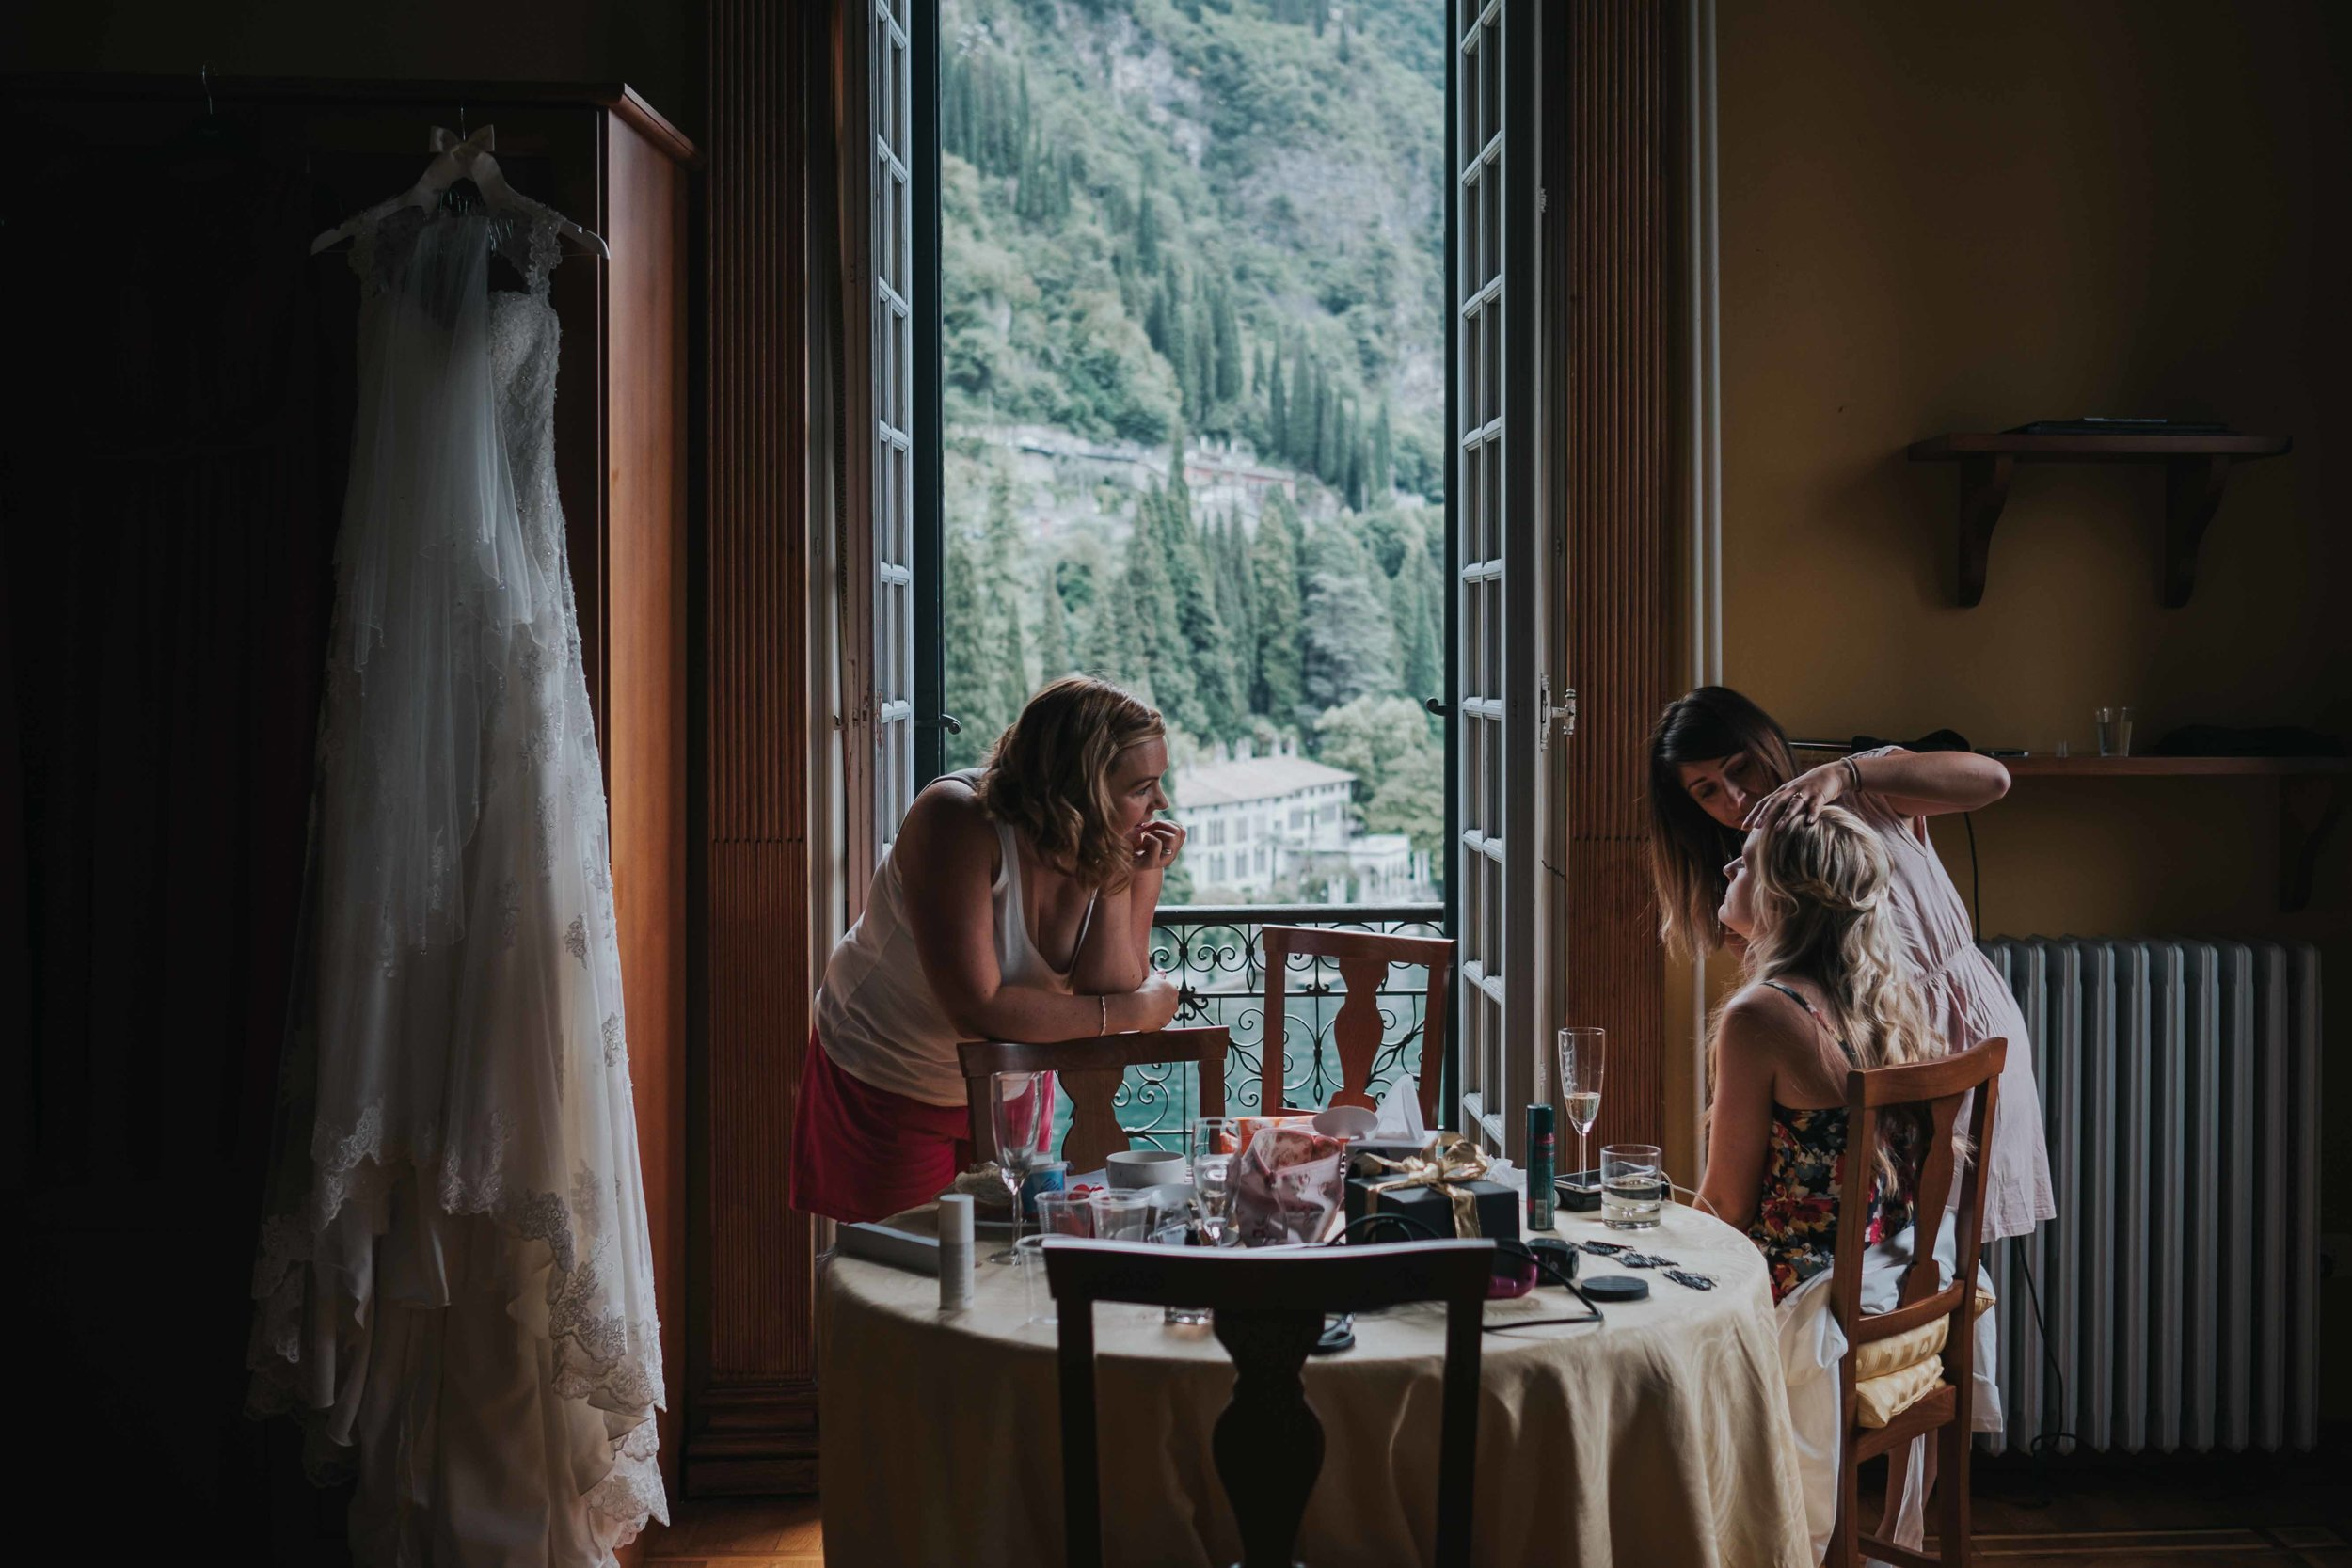 Laco Como Italy destination wedding photographer cheshire north west england documentry photography (12 of 117).jpg